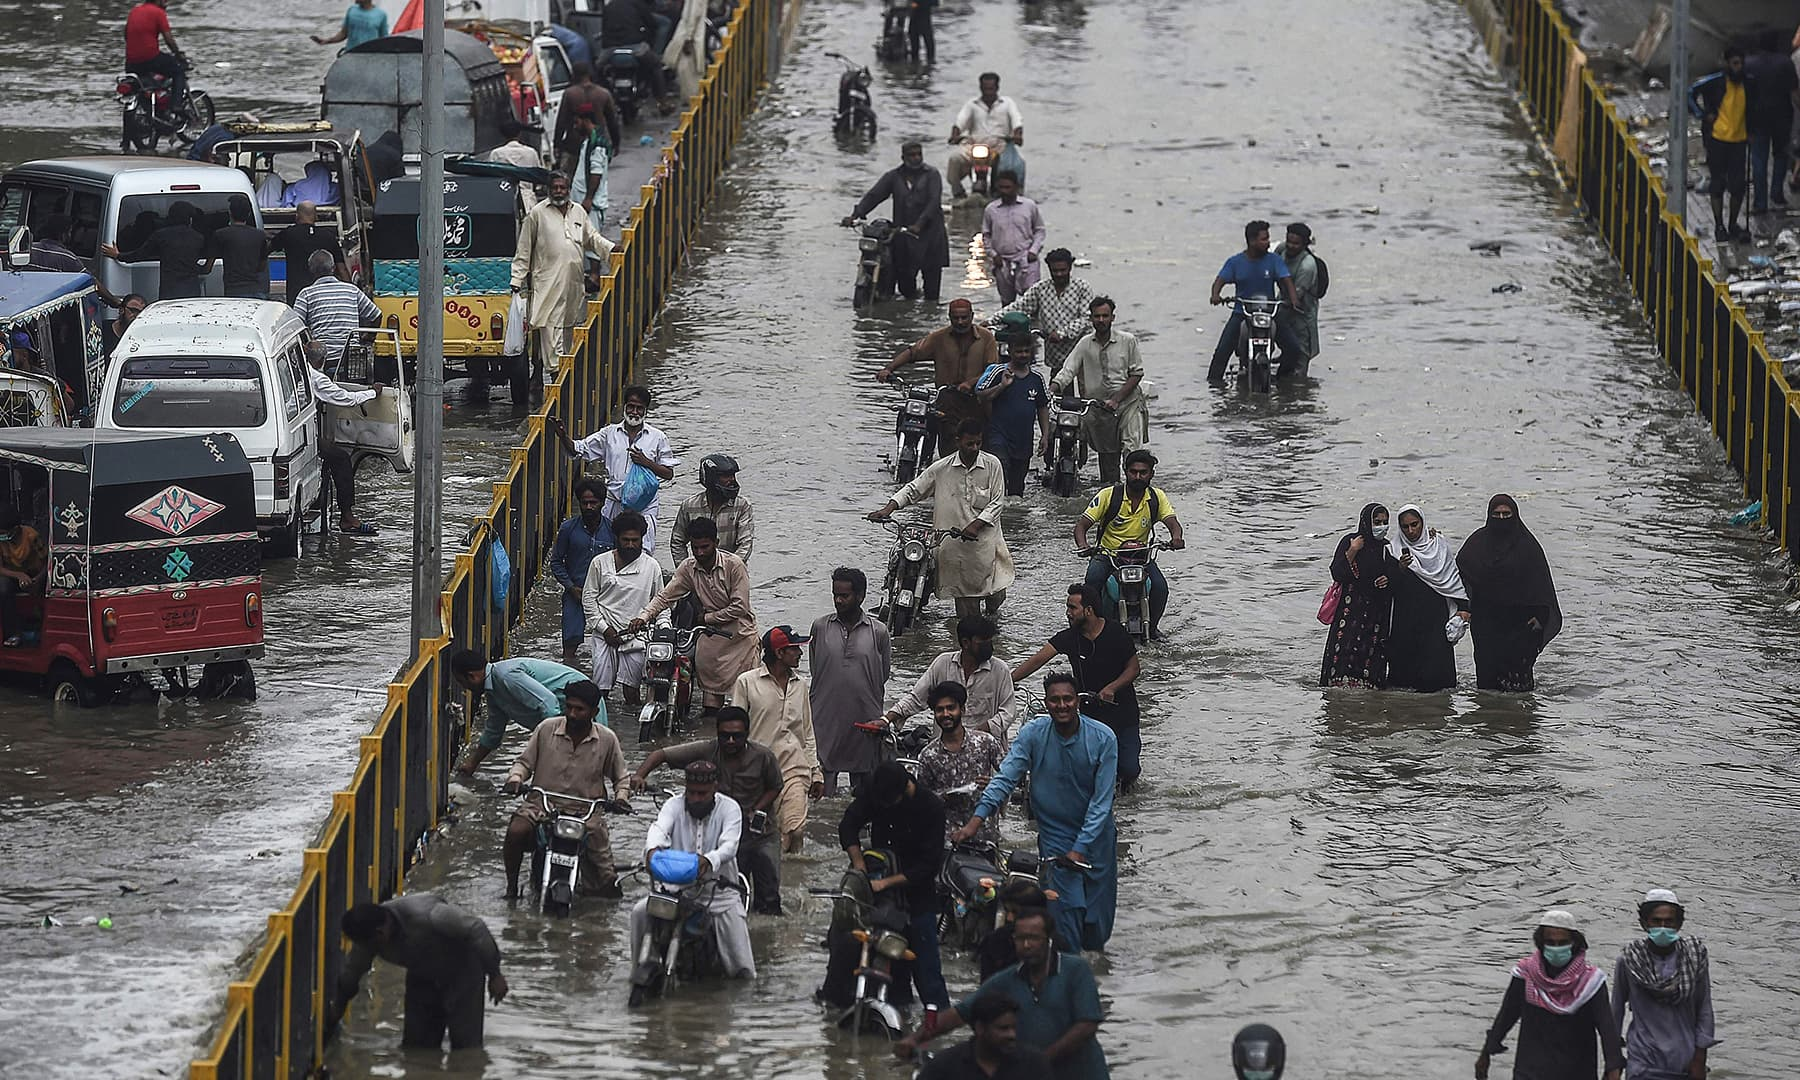 People wade through a flooded street after Thursday's rain in Karachi. — AFP